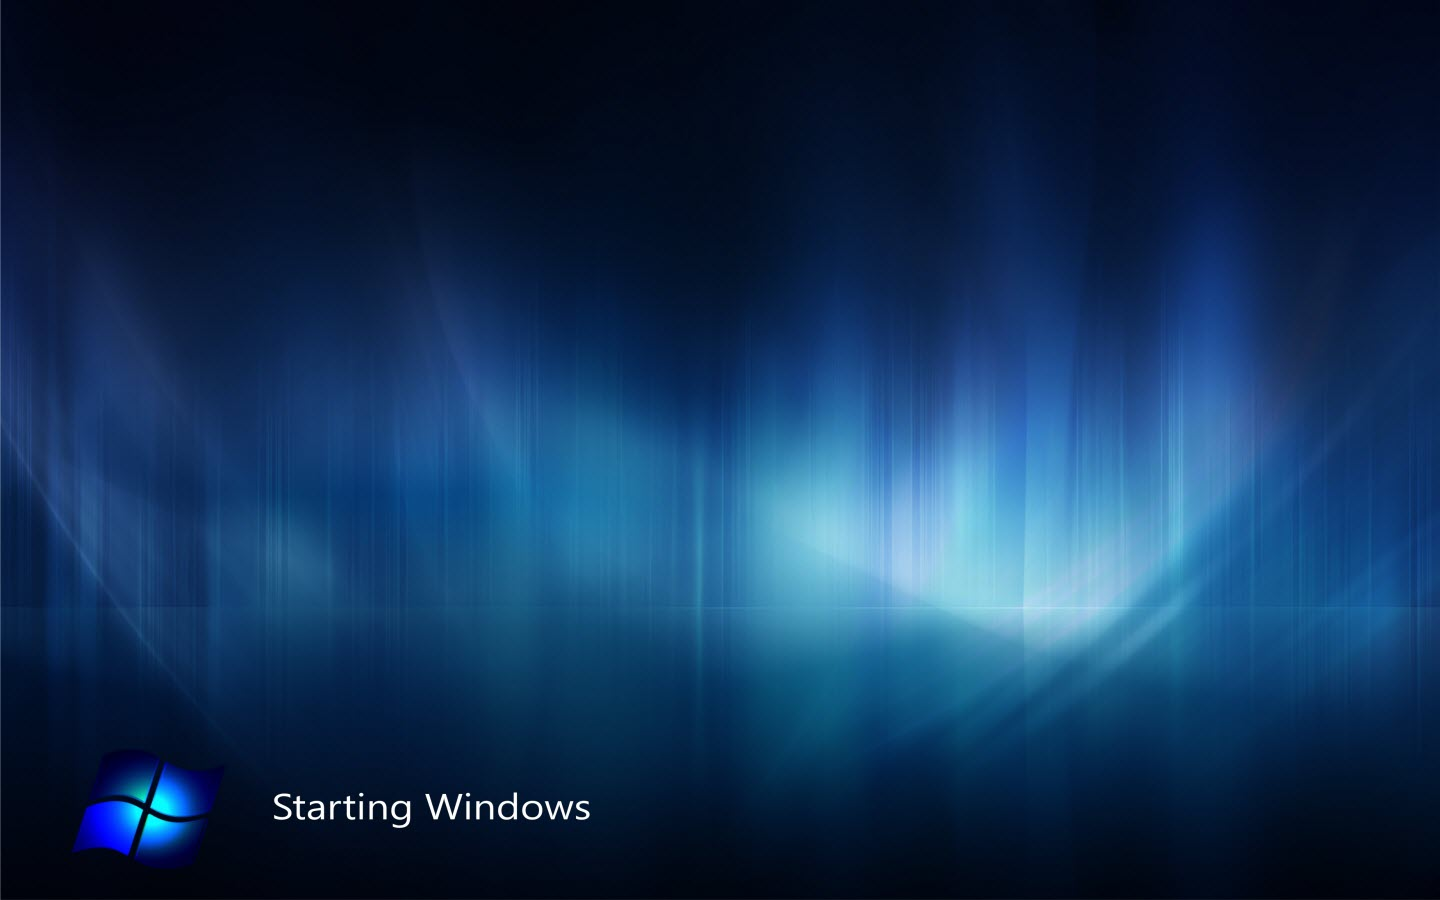 High definition wallpapers windows 8 starting window for Window definition